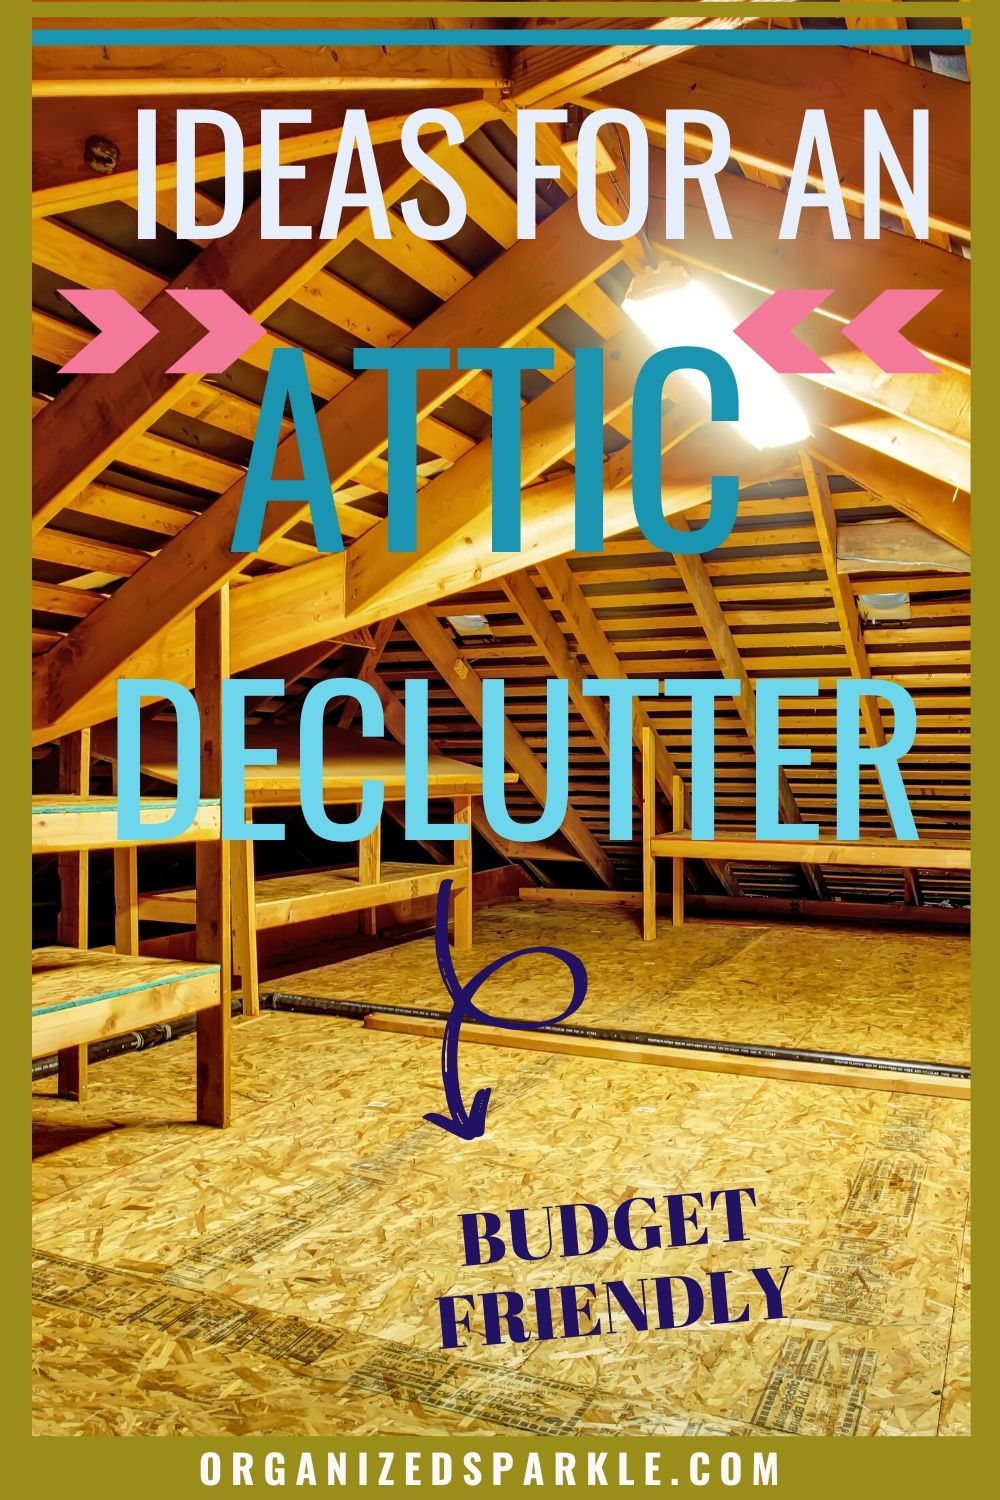 How To Organize The Attic Tips For Decluttering Your Attic In 2020 Attic Organization Attic Storage Solutions Declutter